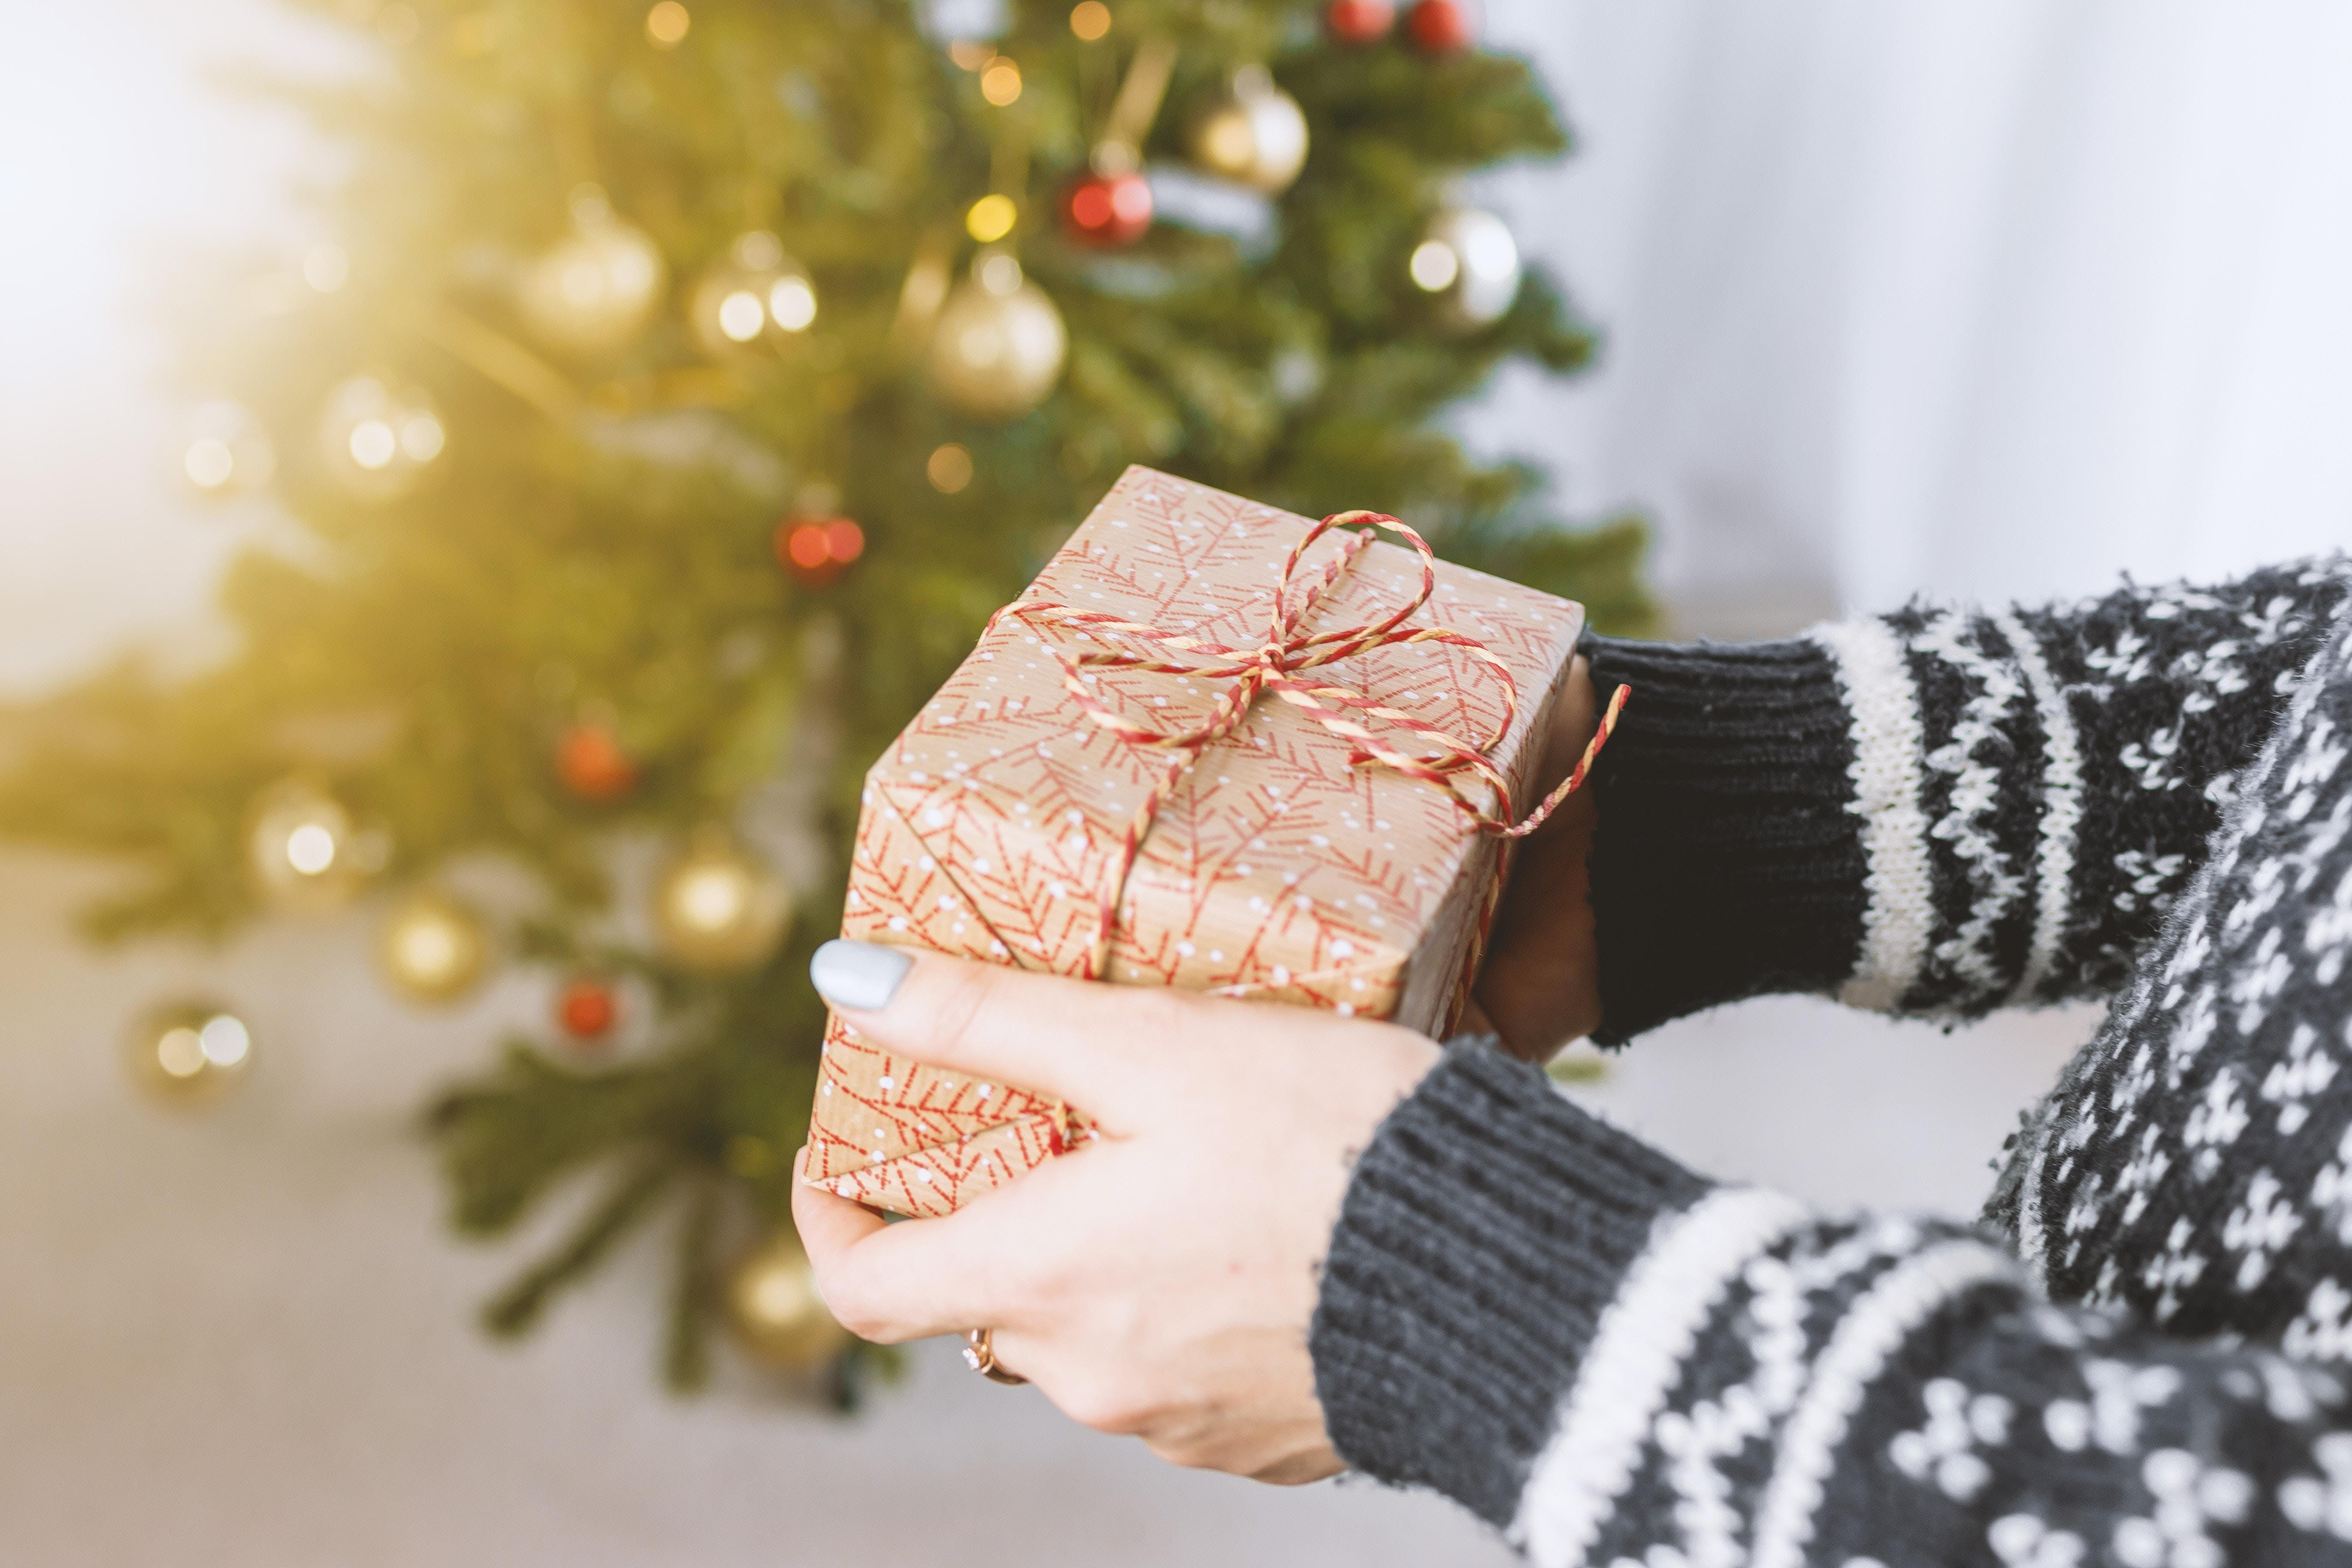 Families and Holidays: Maintaining Sanity Through the New Year